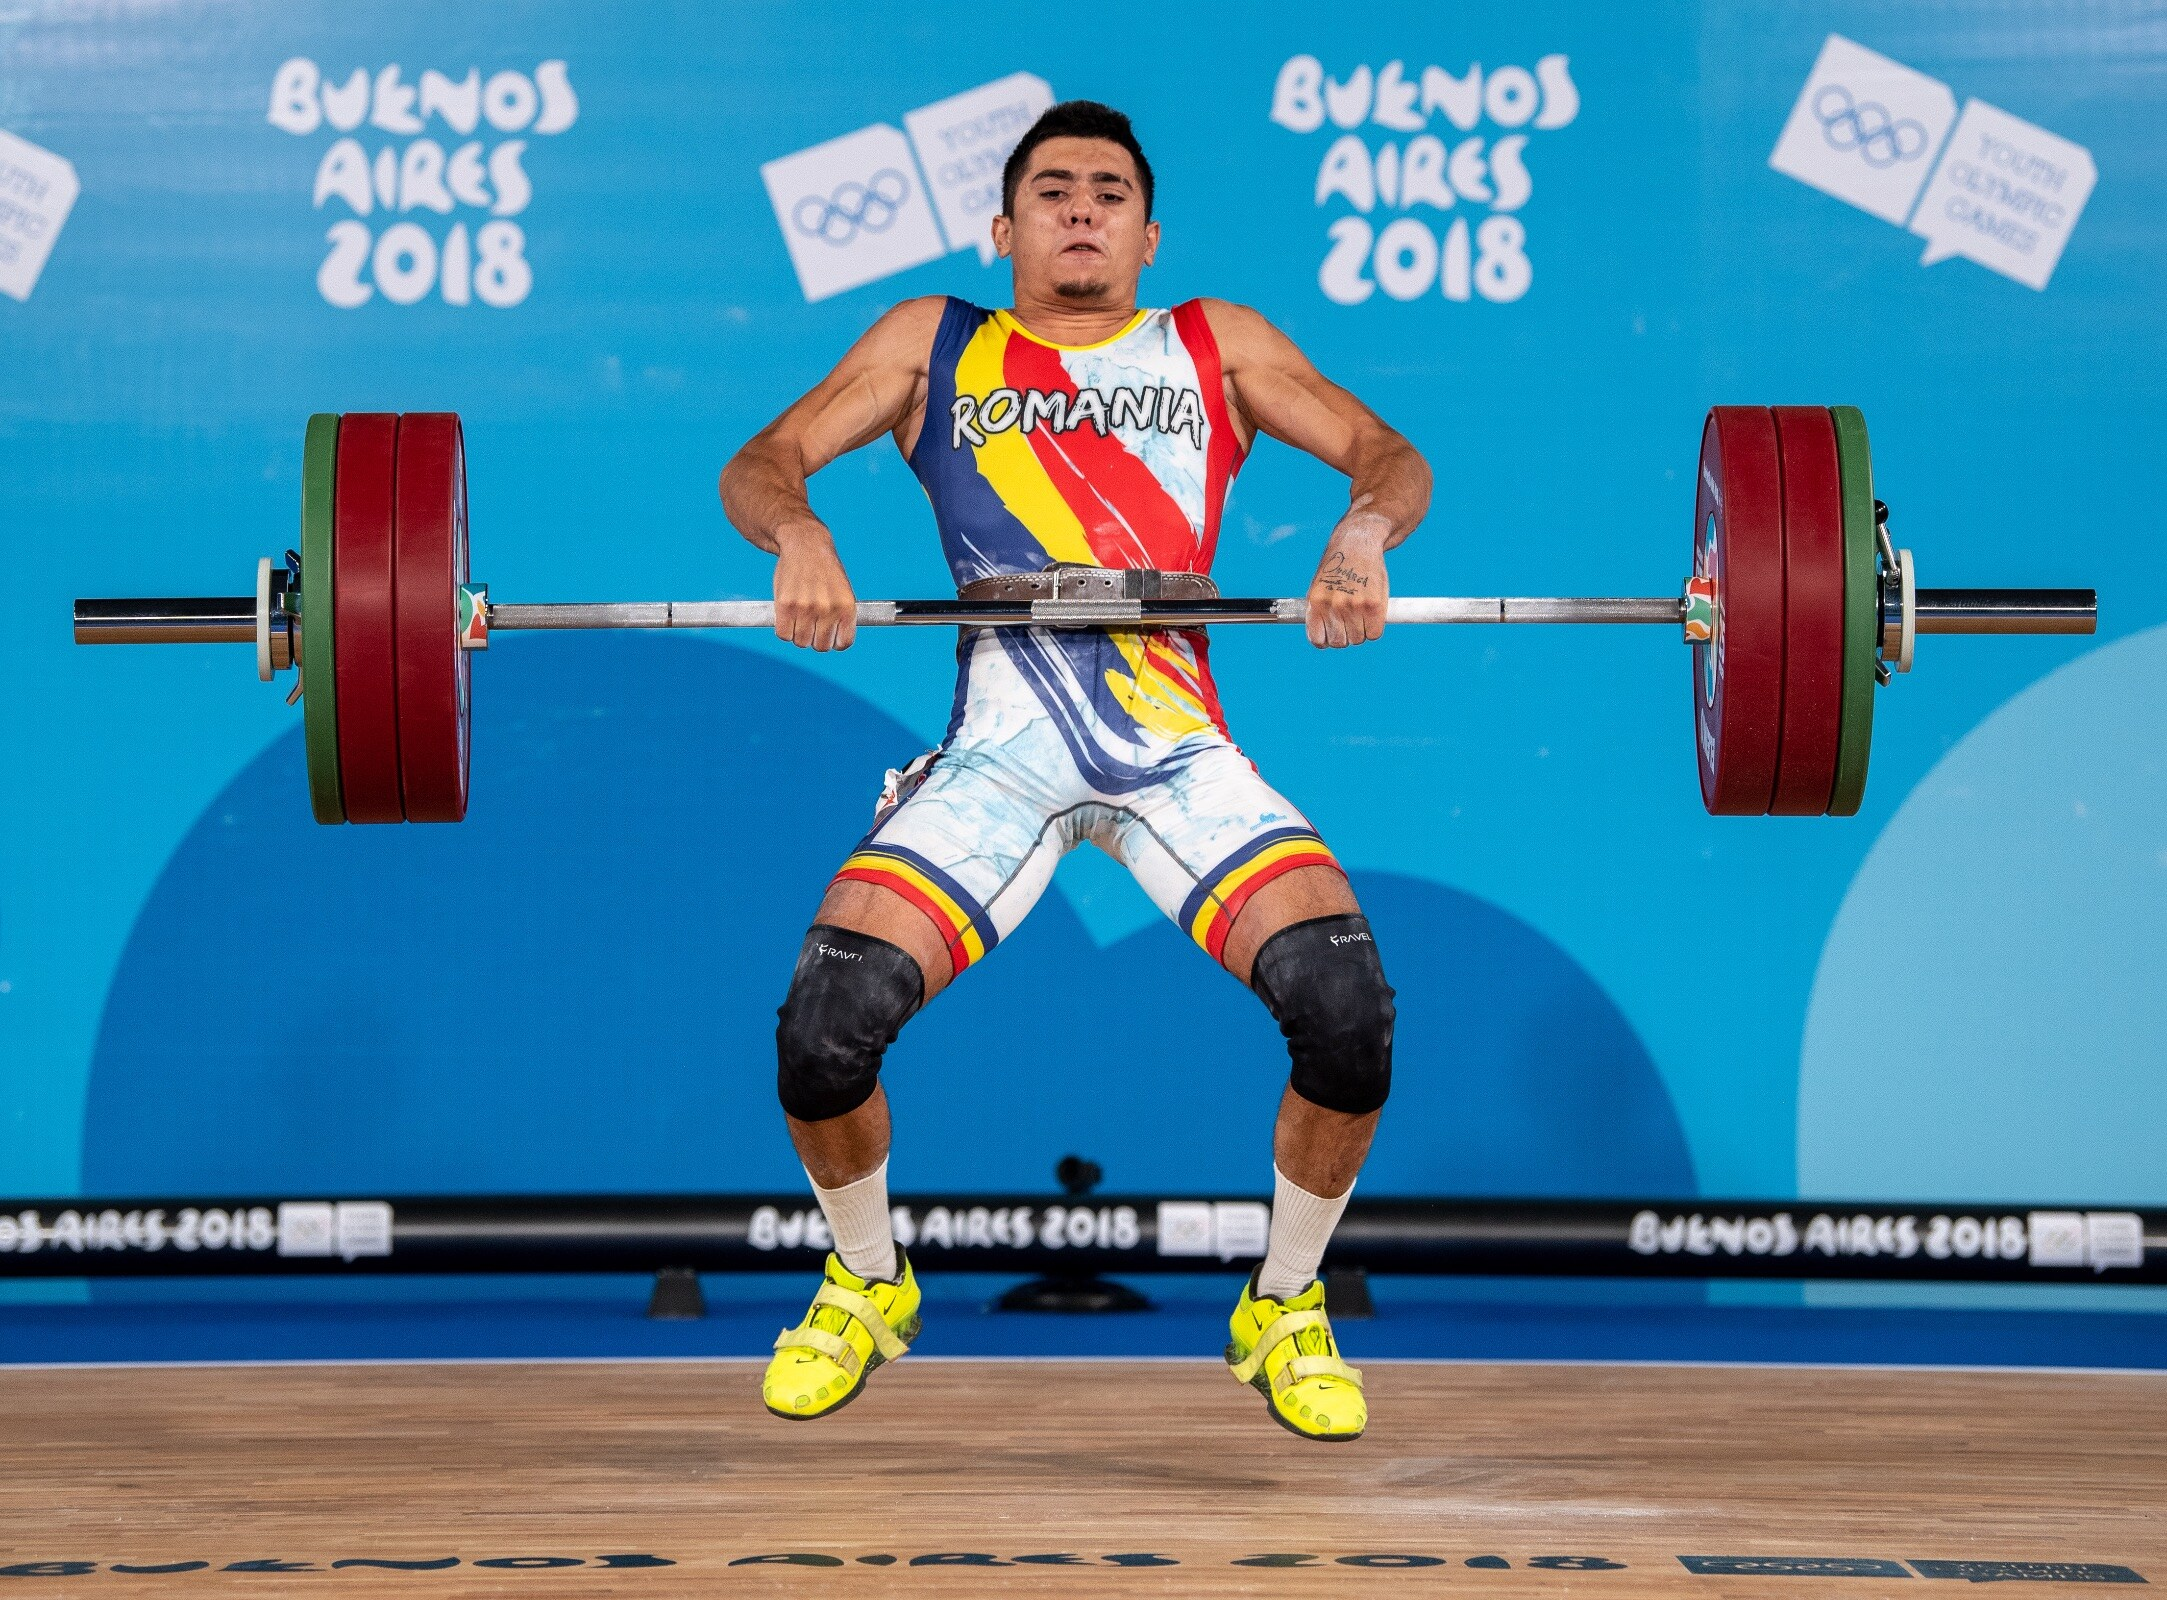 Buenos Aires 2018 - Weightlifting - Men's 62kg